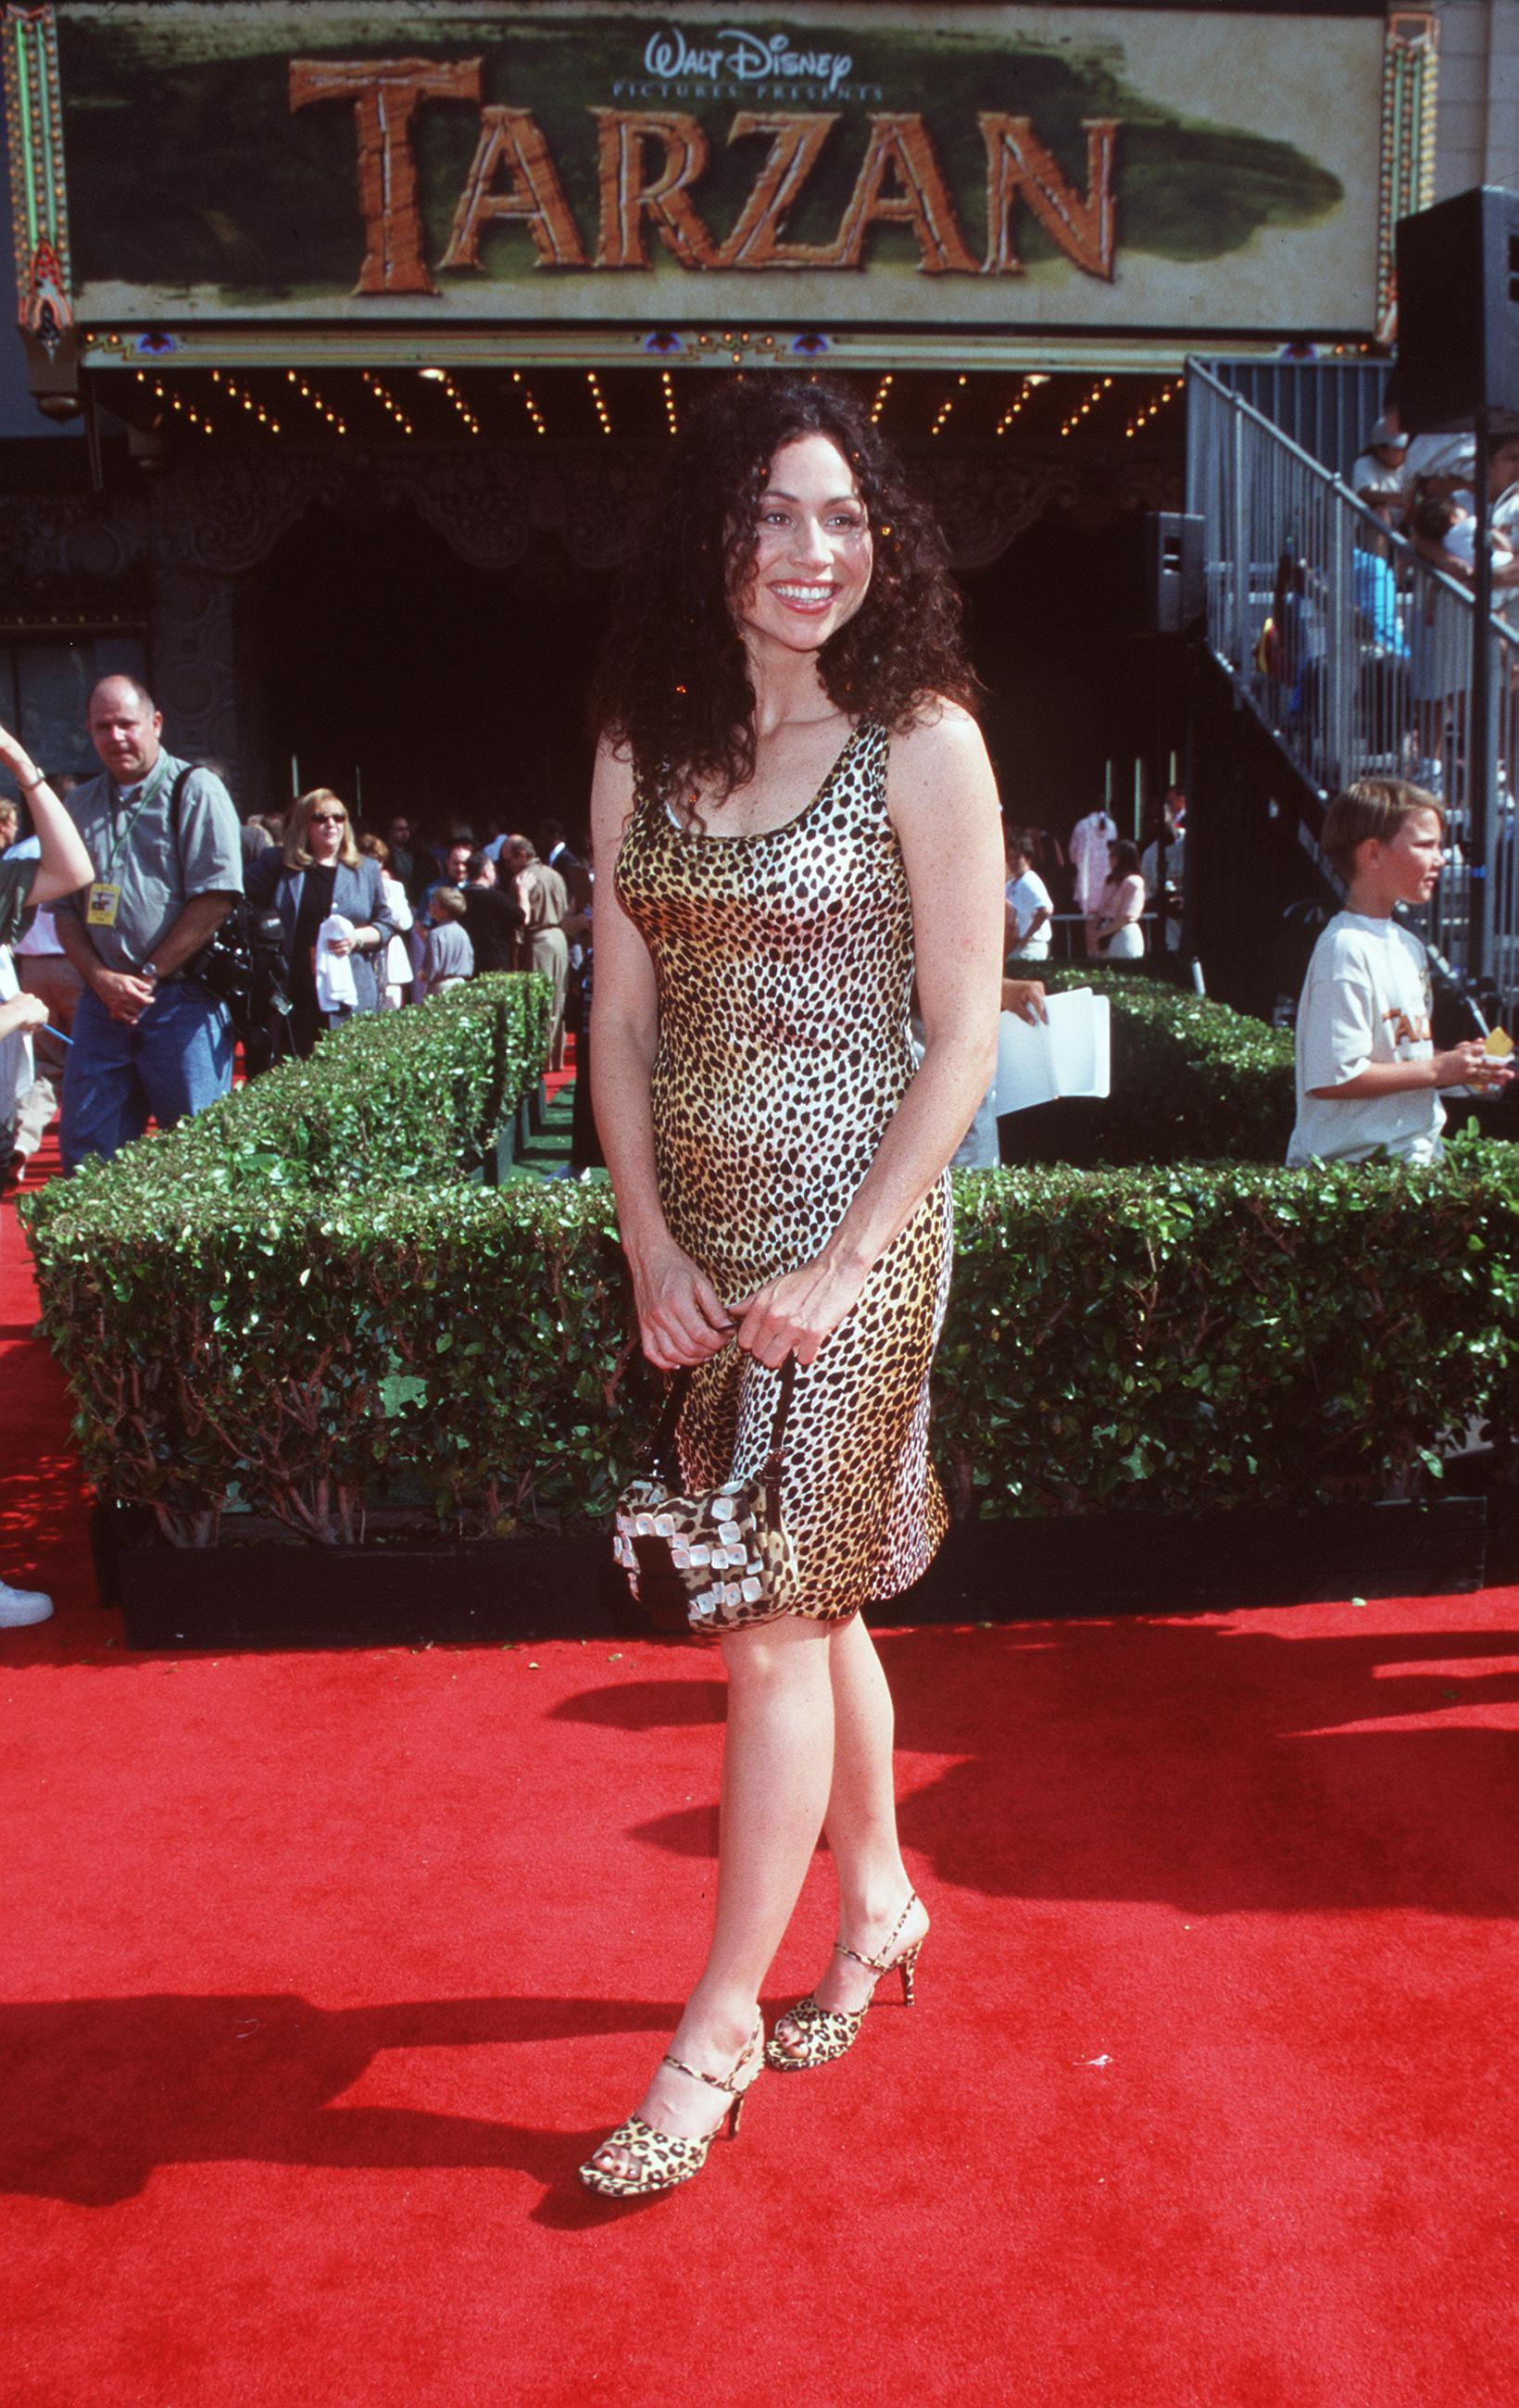 "378347 01: 6/12/99 Hollywood, CA Minnie Driver at the premiere of the new film ""Tarzan."" Photo Brenda Chase/Online USA, Inc."